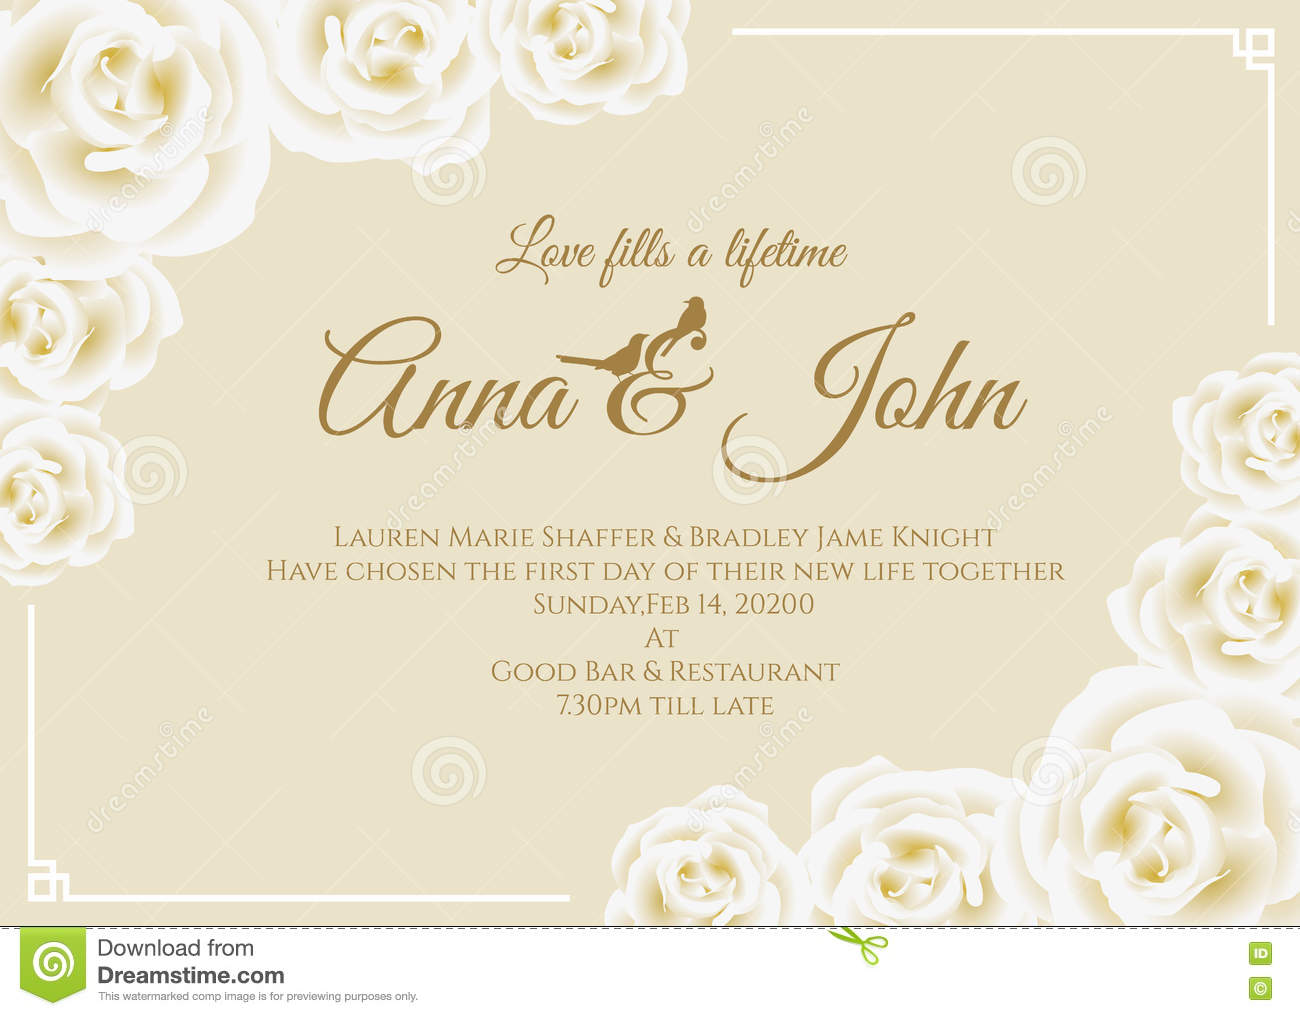 wedding card backgrounds vectors%0A Wedding Card White Rose Floral Frame And Soft Yellow Cream  Wedding card  yellow background